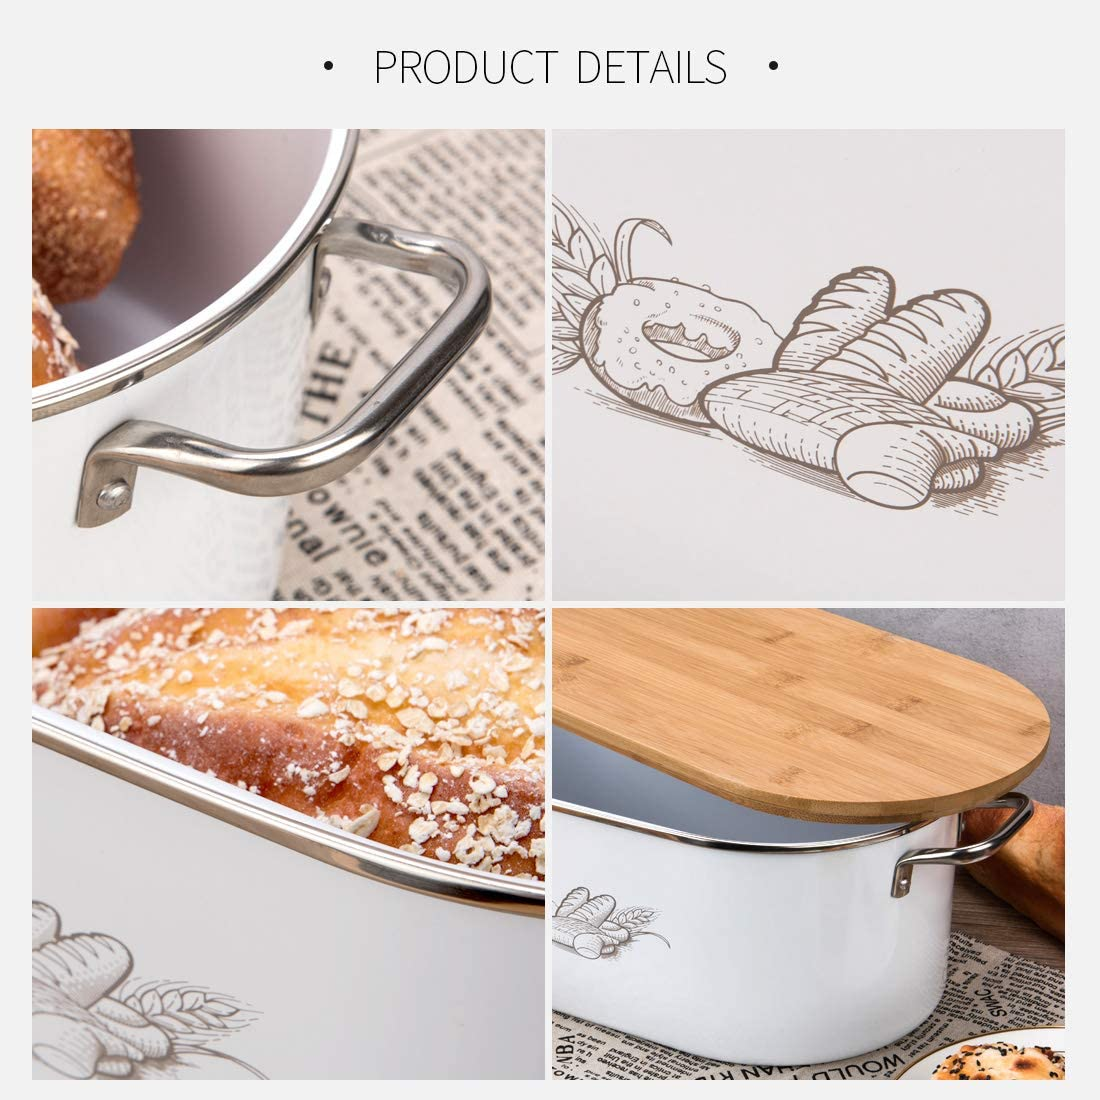 Bread Box Bamboo Cutting Board Lid Stainless Steel Modern Farmhouse Bread Holder Container Bin 8x16.5x5.5 inch Cool White